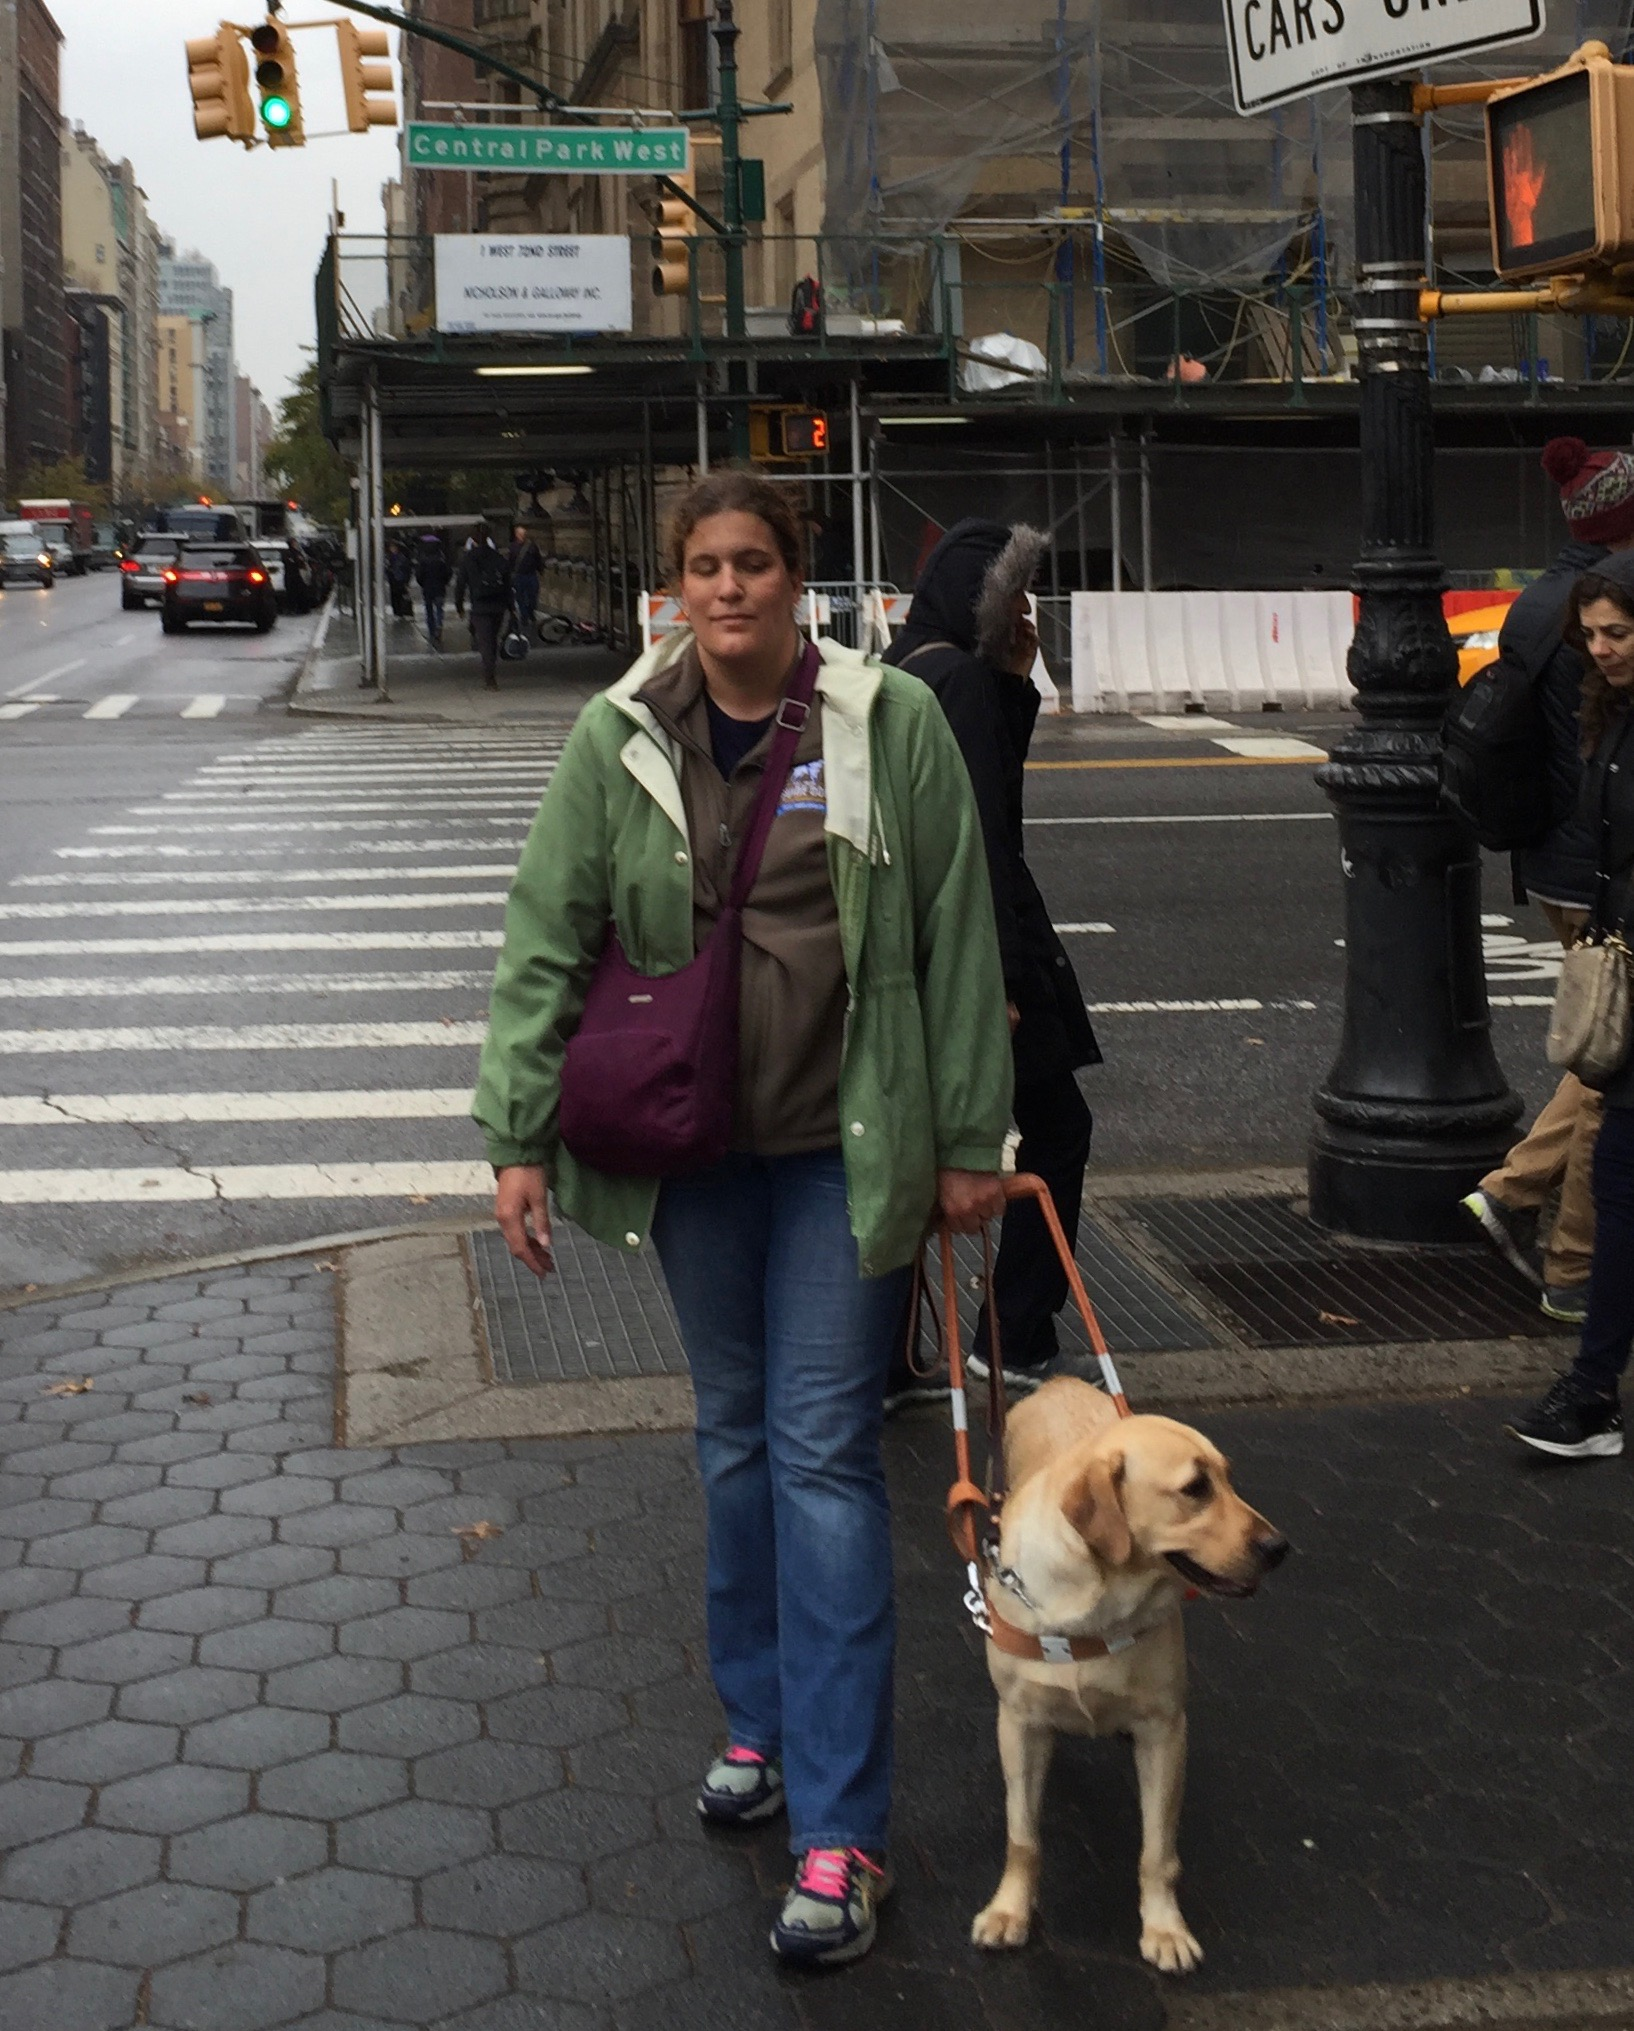 A woman and her guide dog walk on a sidewalk in New York City.